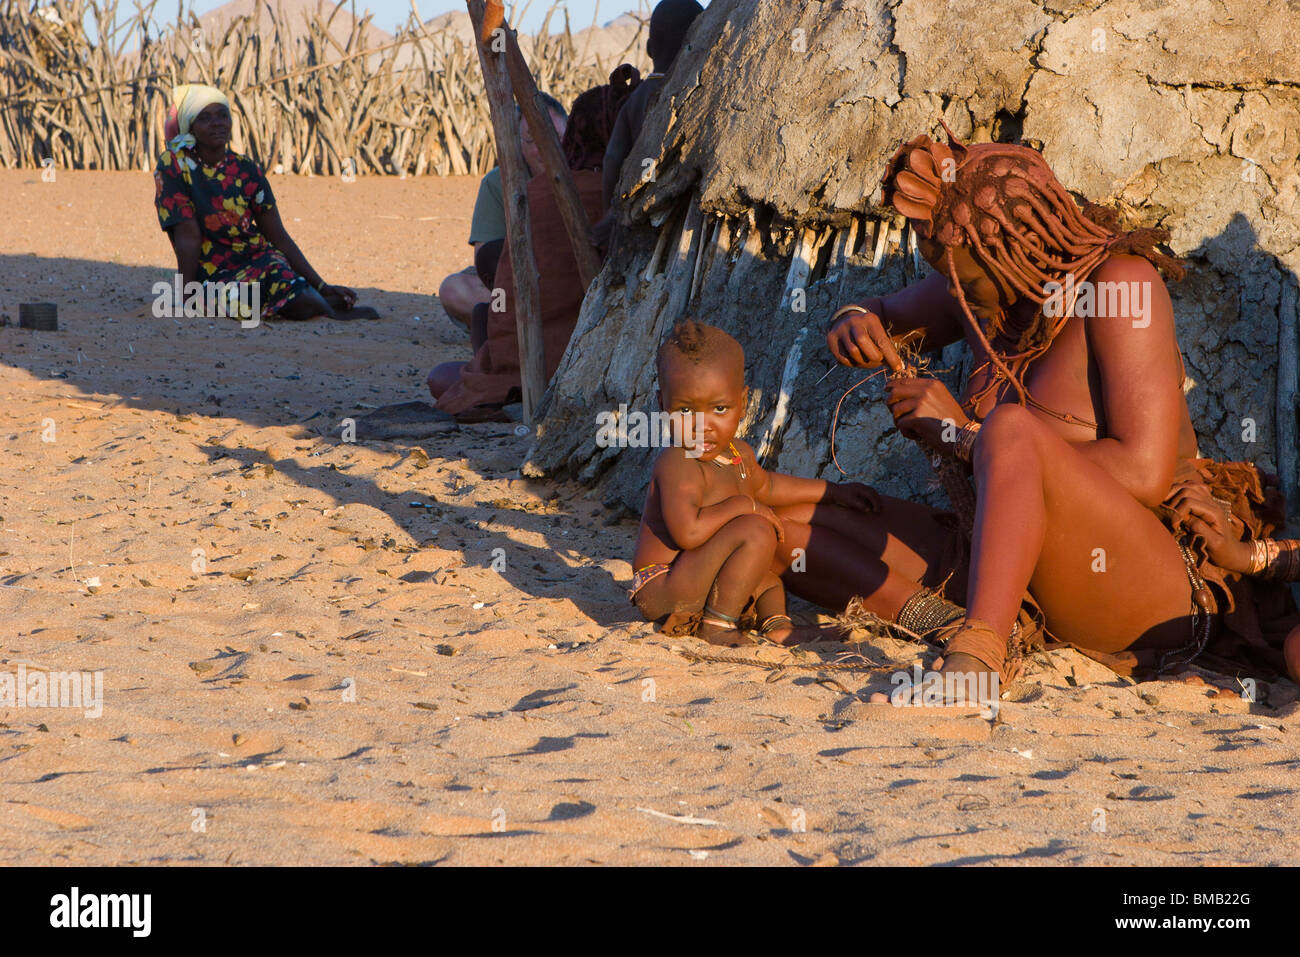 Nomadic Himba Tribe, Mother and Child weaving in warm evening sunlight by cow dung hut dressed in traditional costume - Stock Image